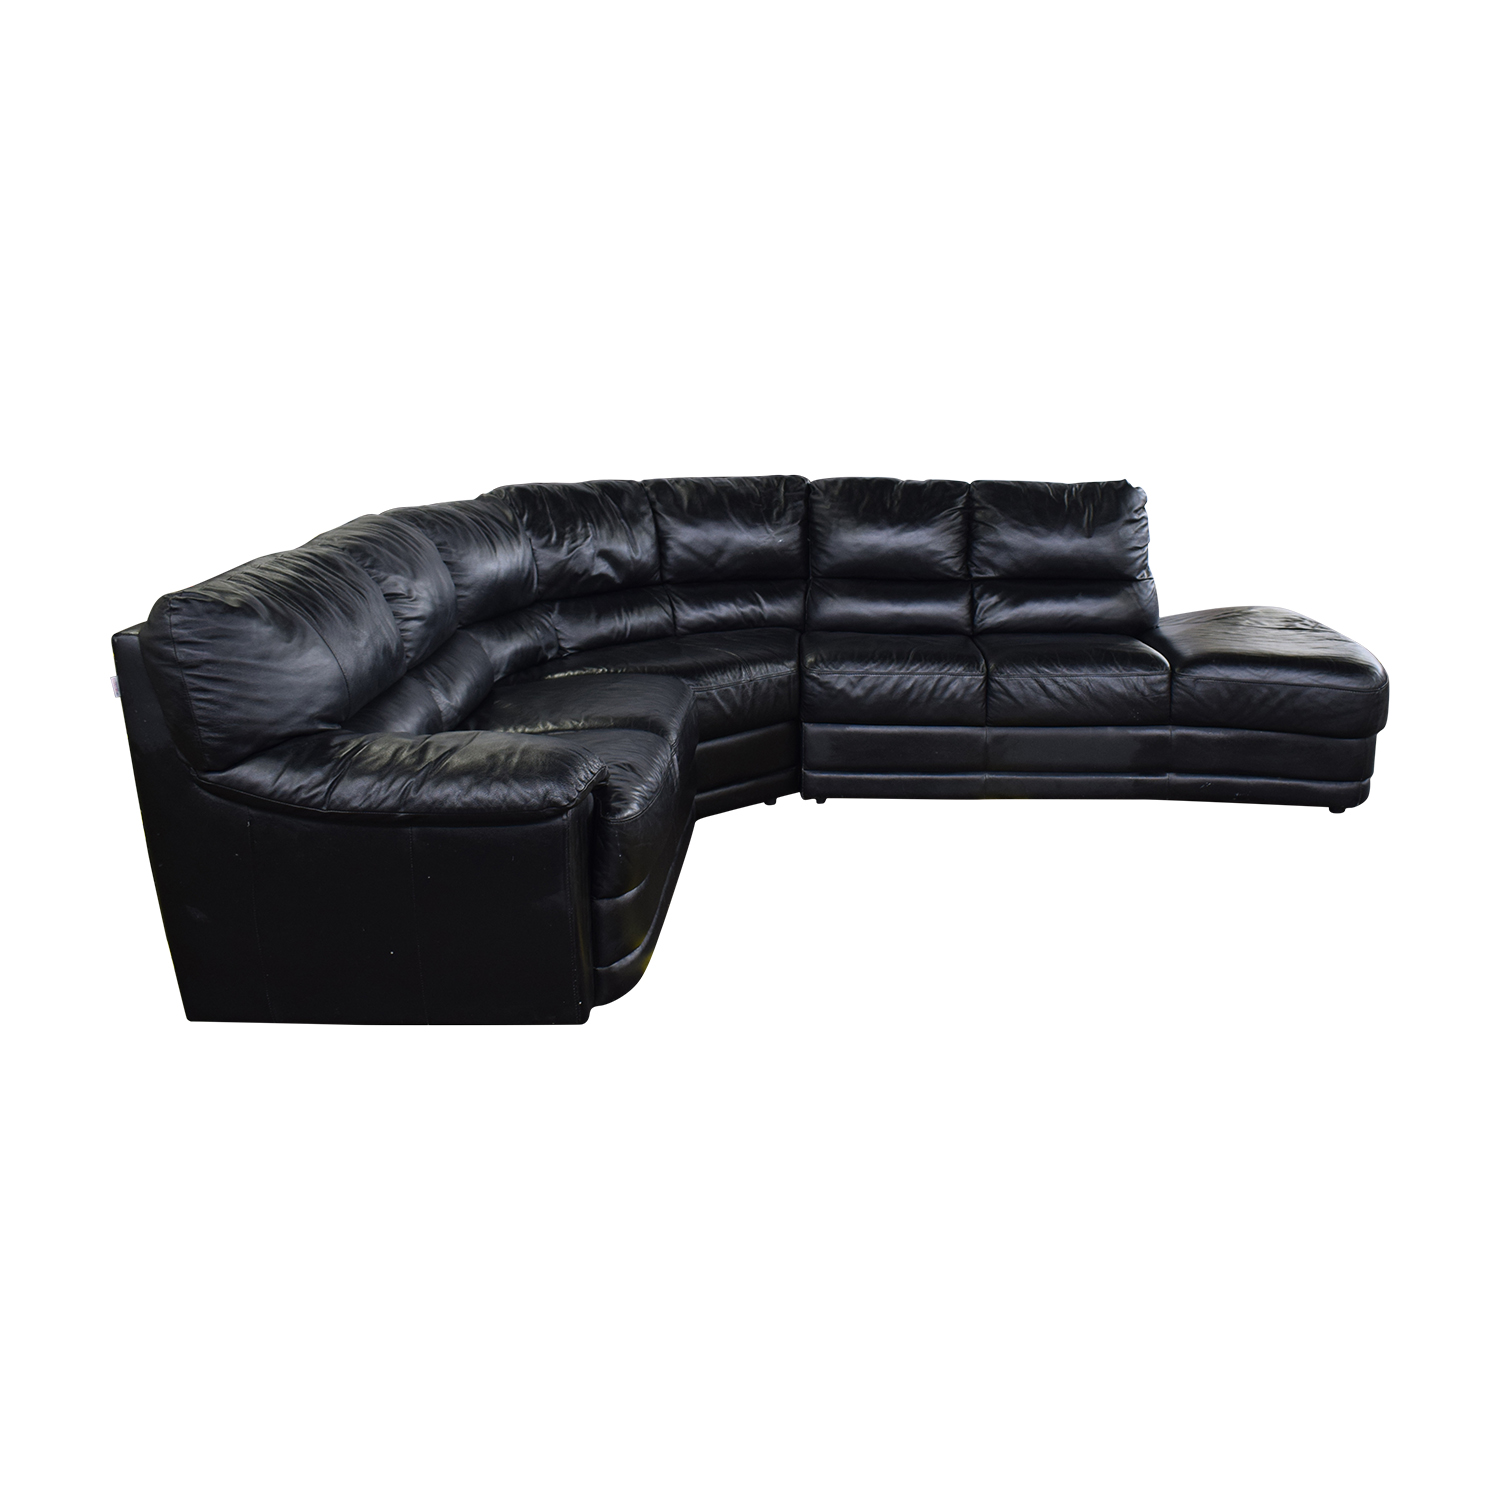 Nicoletti Home Nicoletti Home Black Sectional used